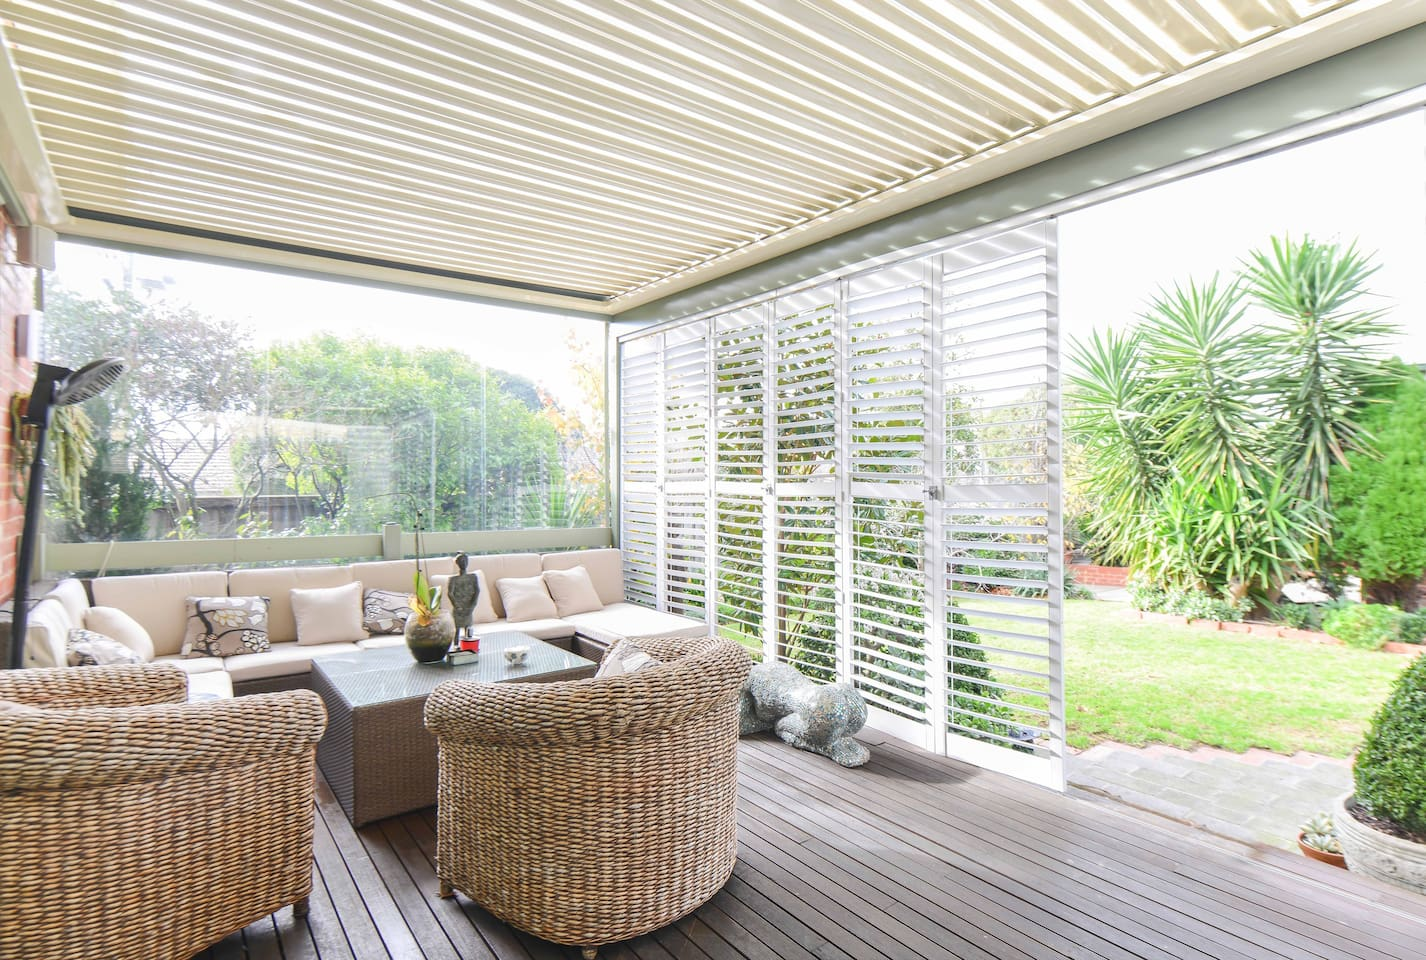 Outdoor entertaining area with vergola roof that closes automatically if it starts raining. Can be fully enclosed to create yet another entertaining area.